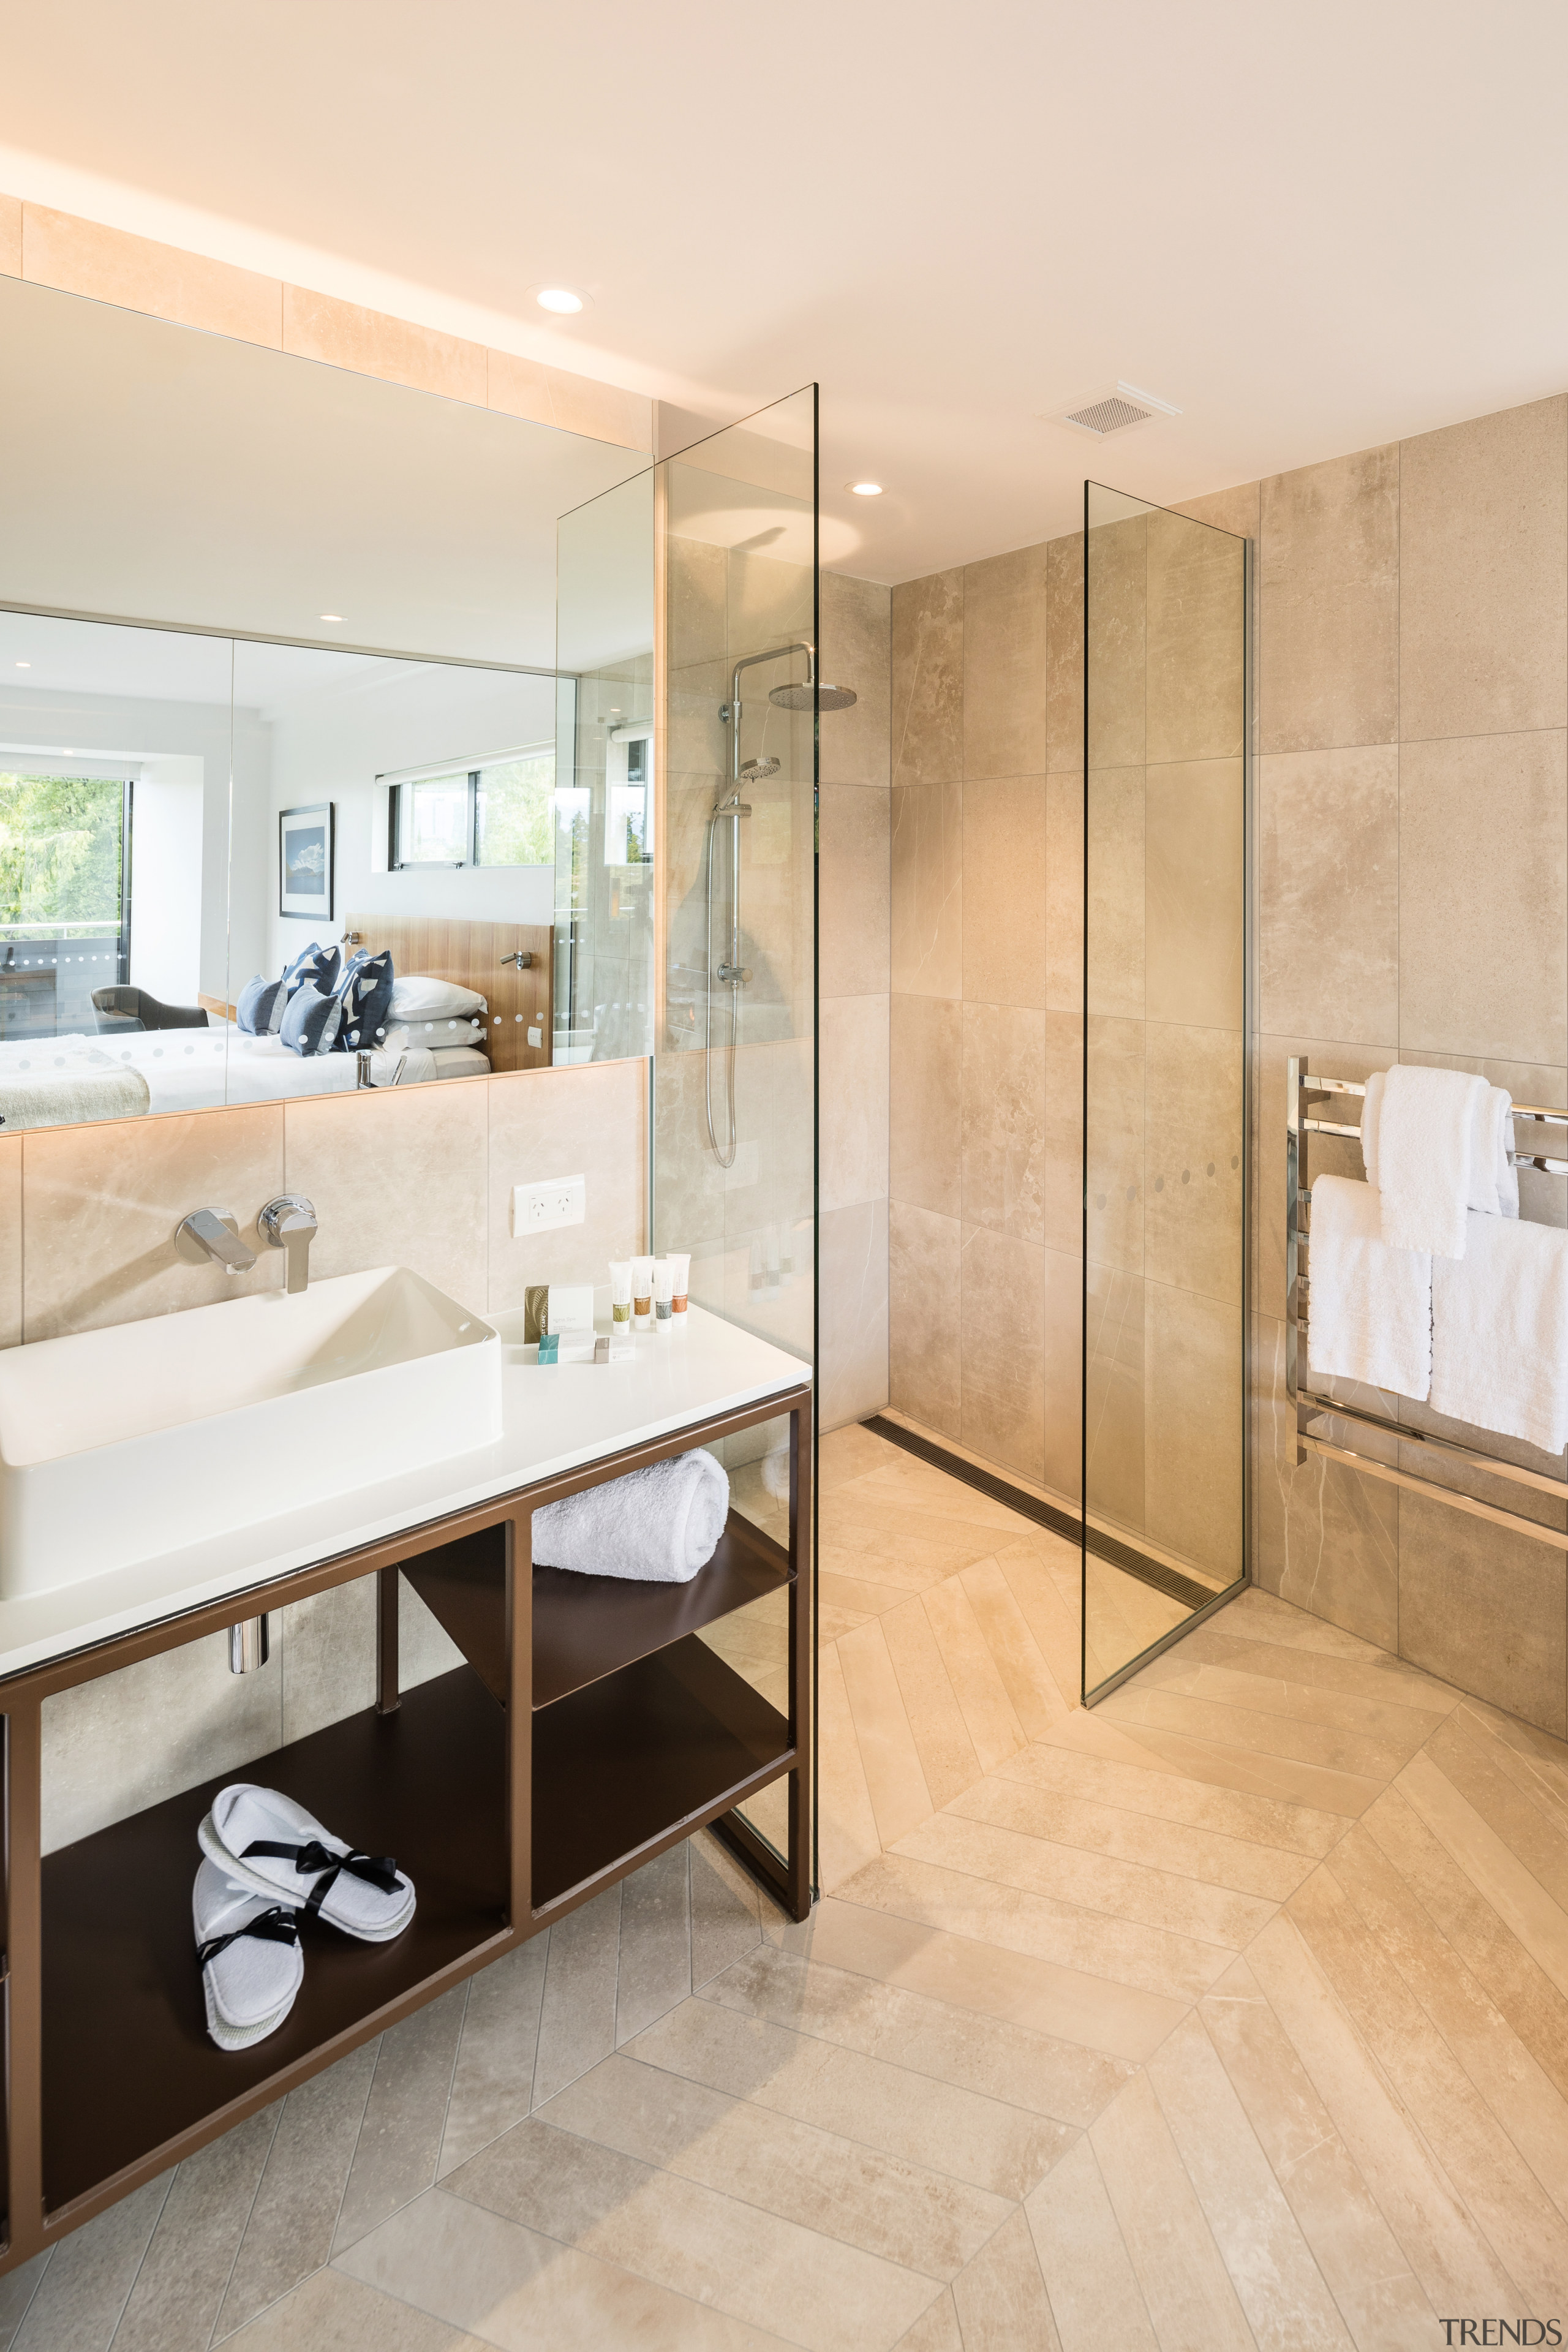 Clean-lined and contemporary, this custom steel-framed vanity is apartment, architecture, bathroom, beige, building, ceiling, floor, flooring, furniture, home, house, interior design, material property, plumbing fixture, property, real estate, room, tile, white, orange